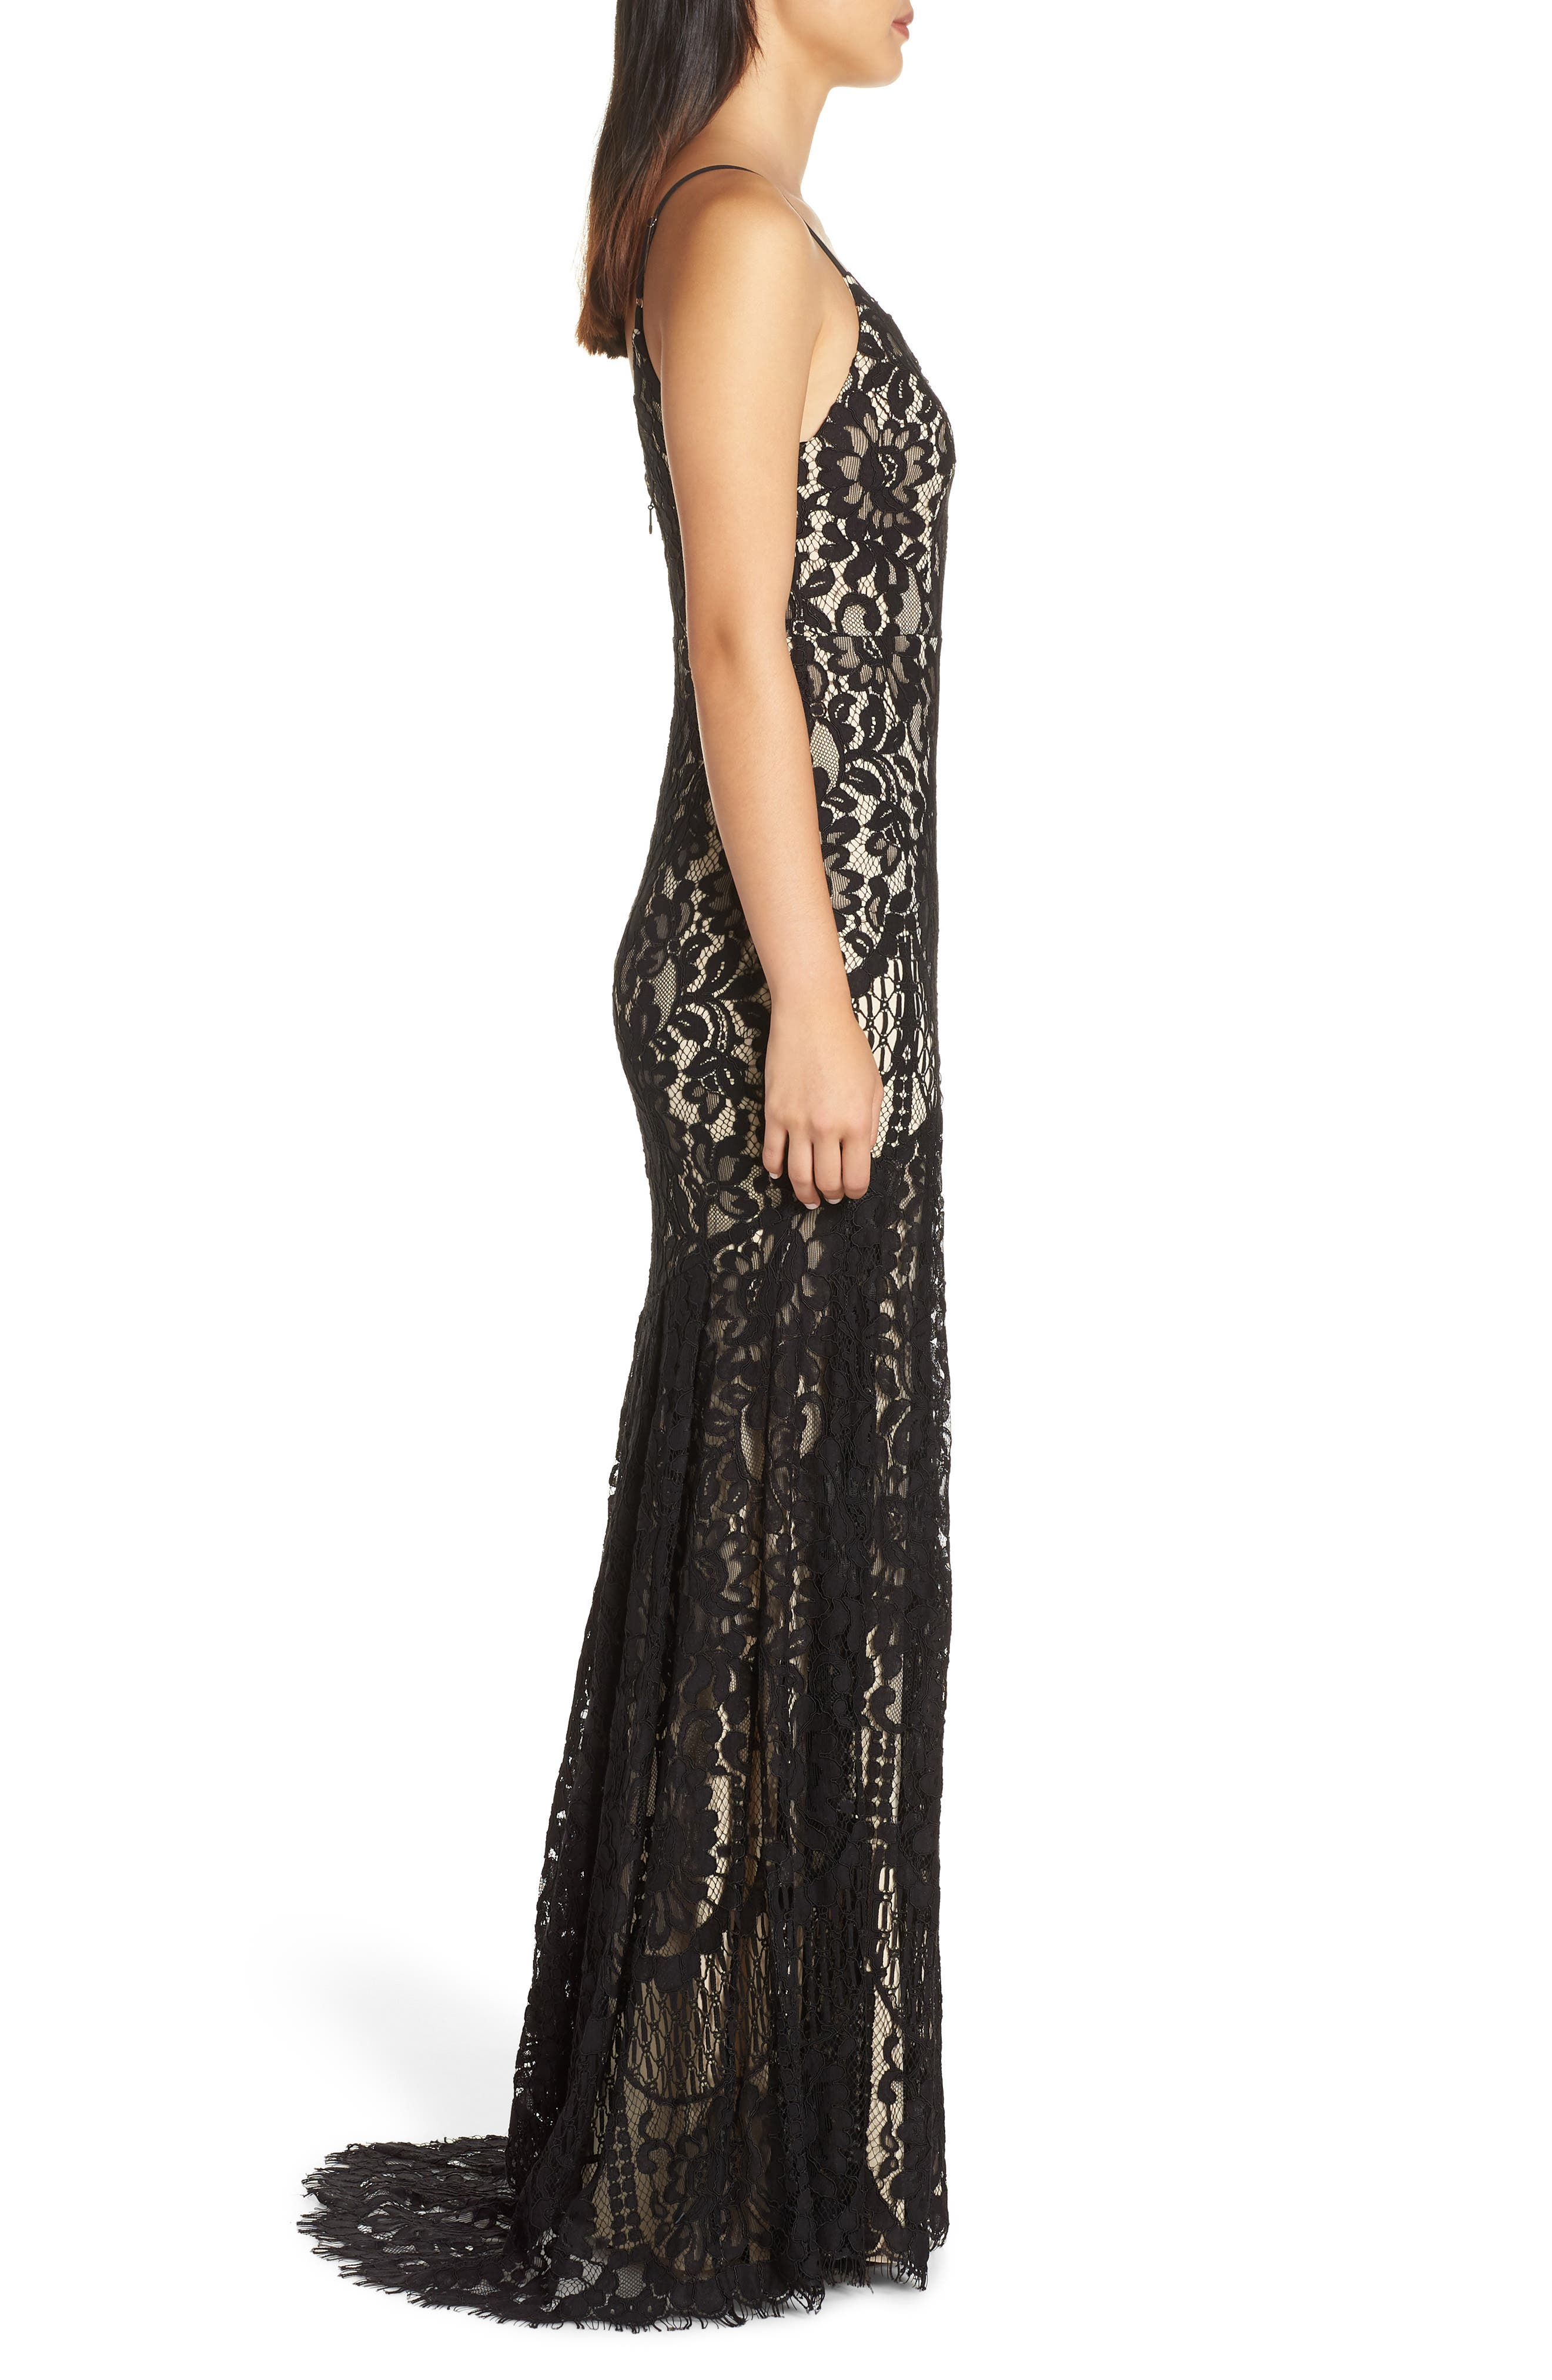 LULUS, Flynn Lace Gown with Train, Alternate thumbnail 4, color, BLACK/ NUDE